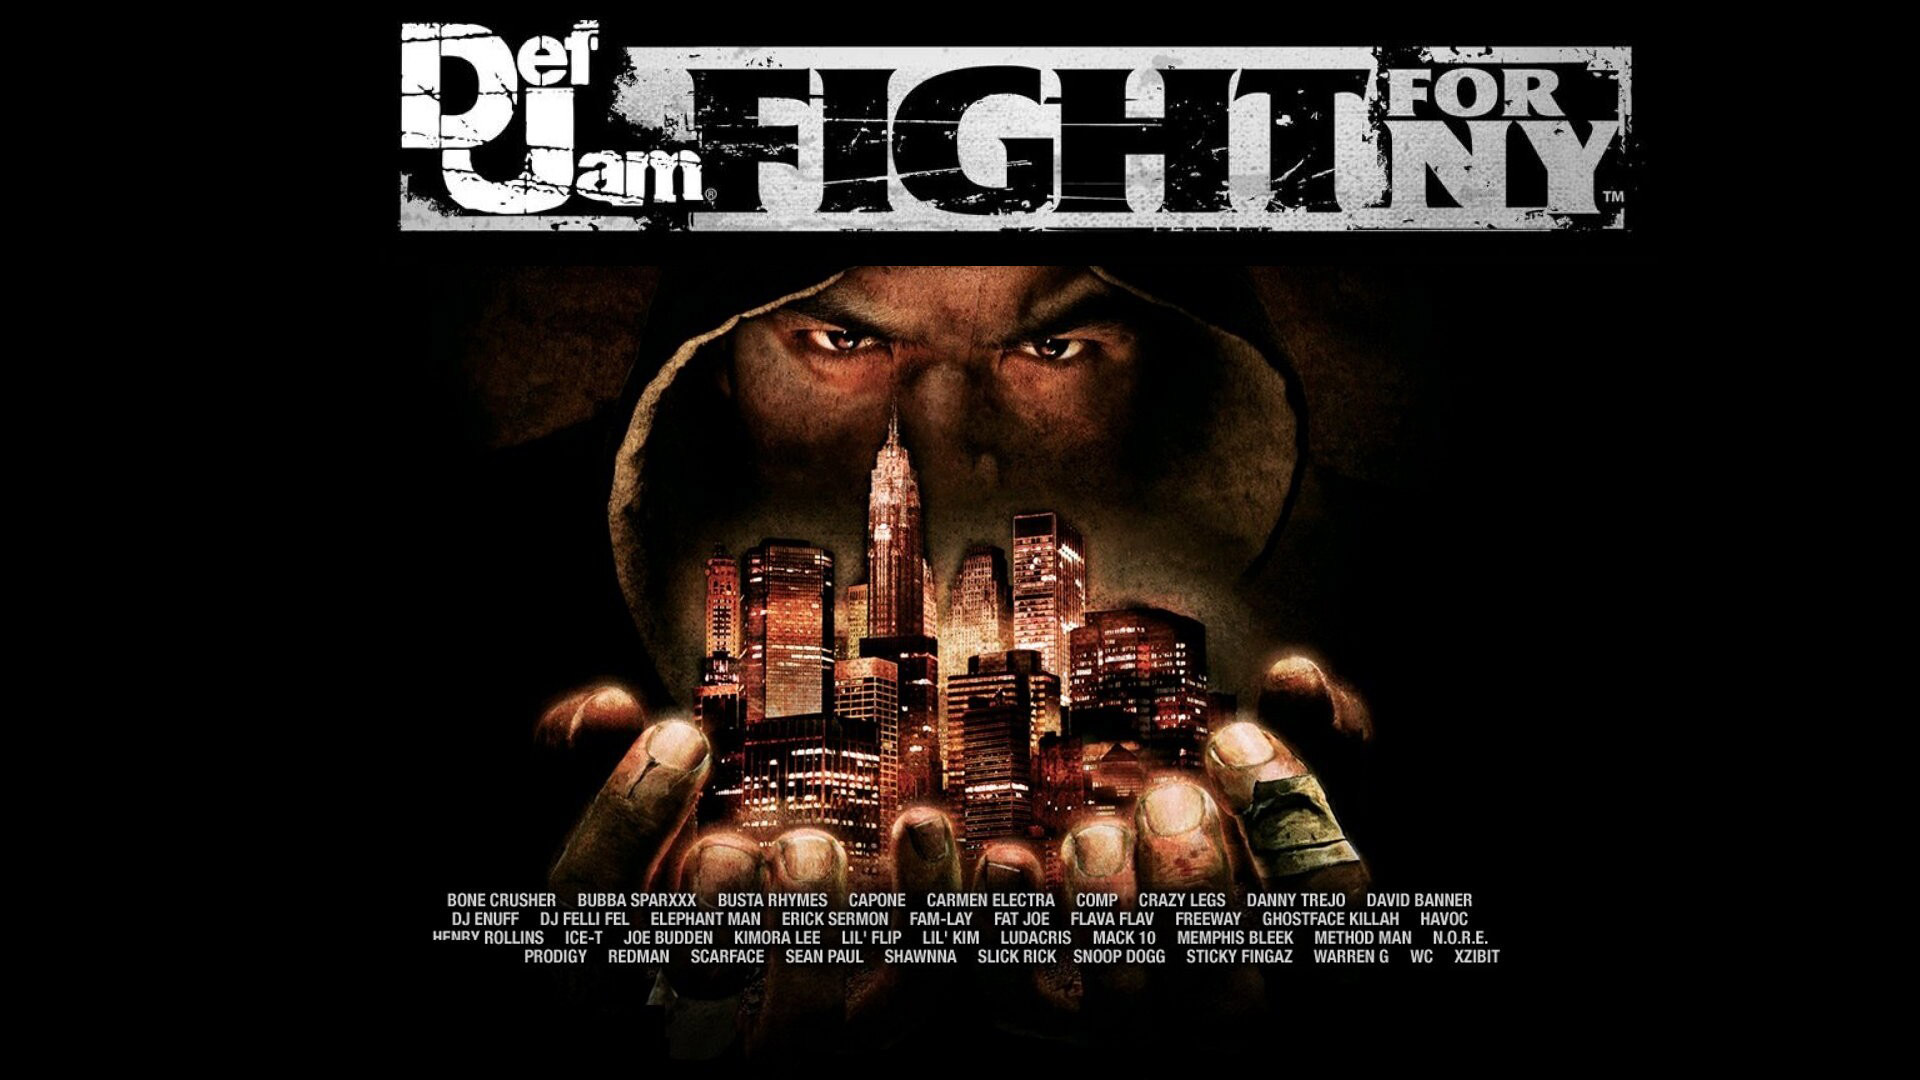 Def Jam: Fight for NY Wallpaper in 1920x1080